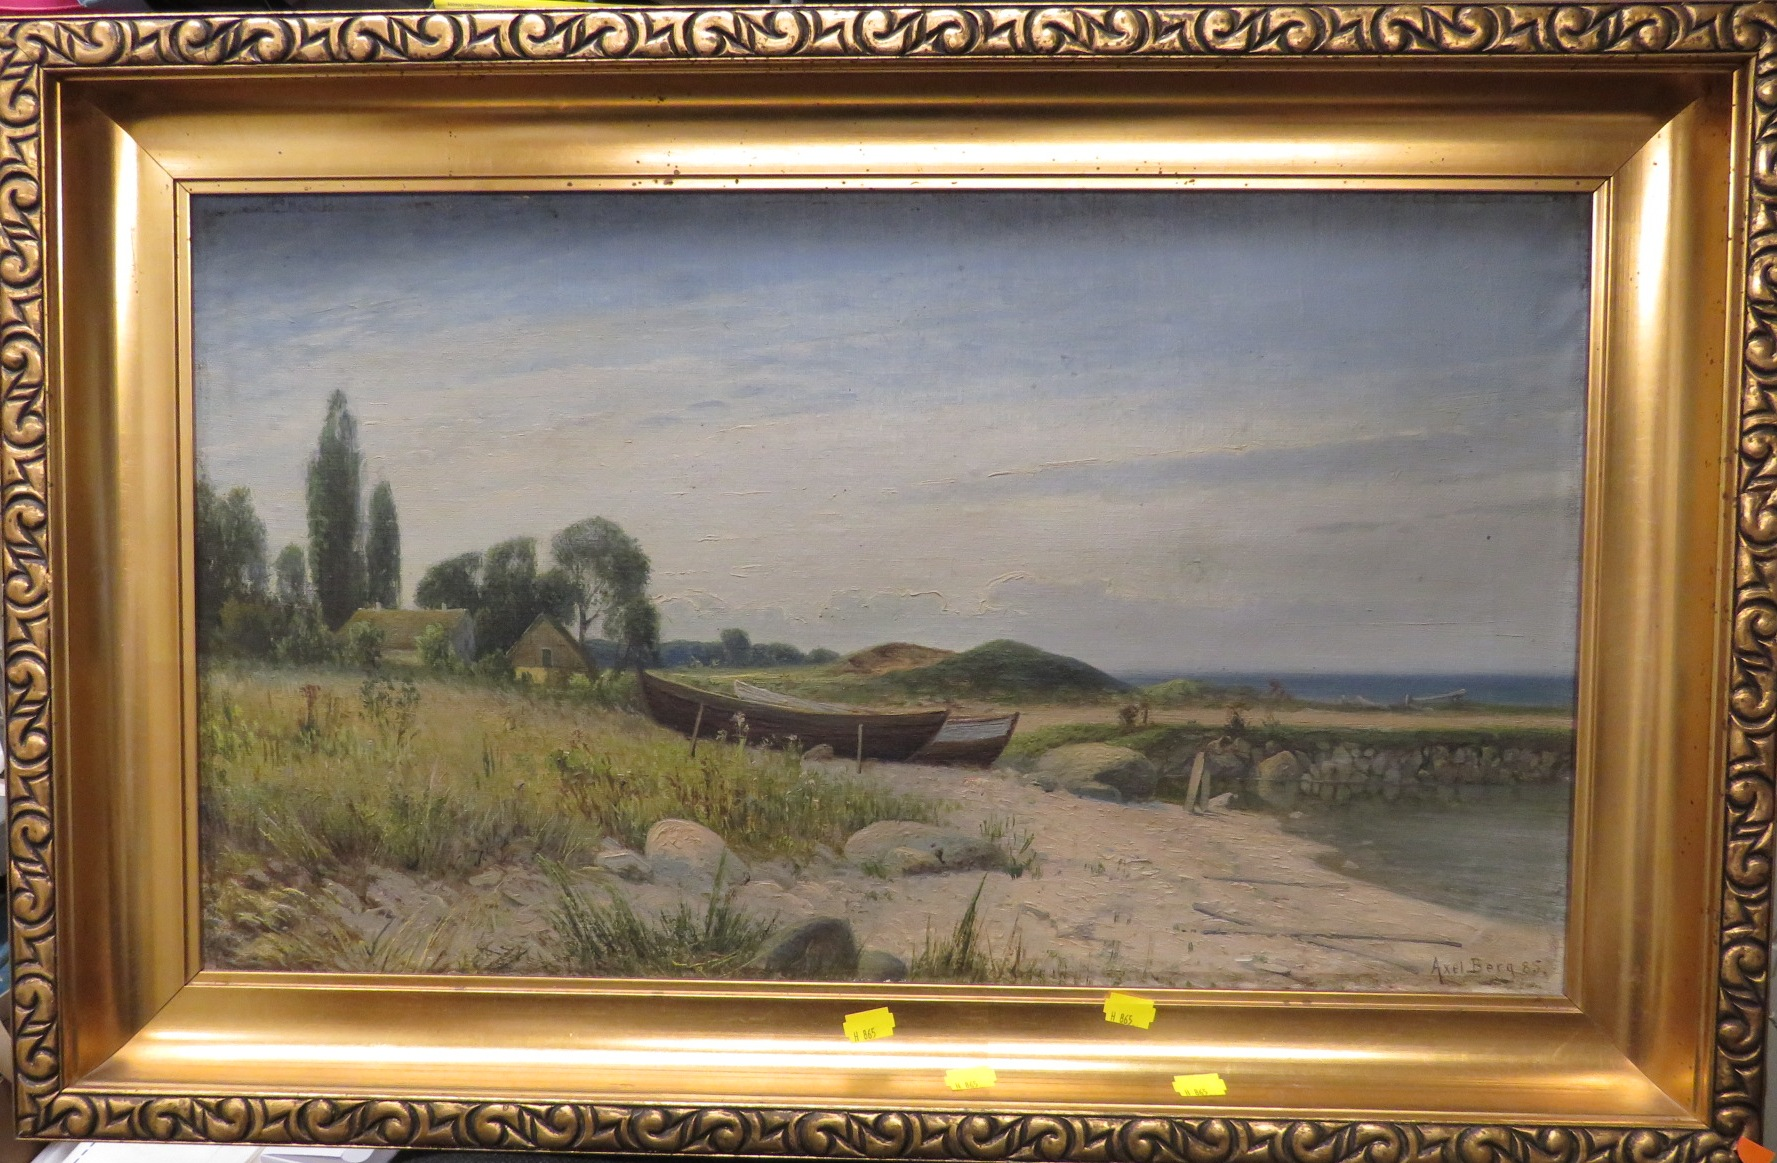 Lot 37 - Shore with rowing boats and cottage, oil on canvas, signed Axel Berg and dated 85 lower right, in